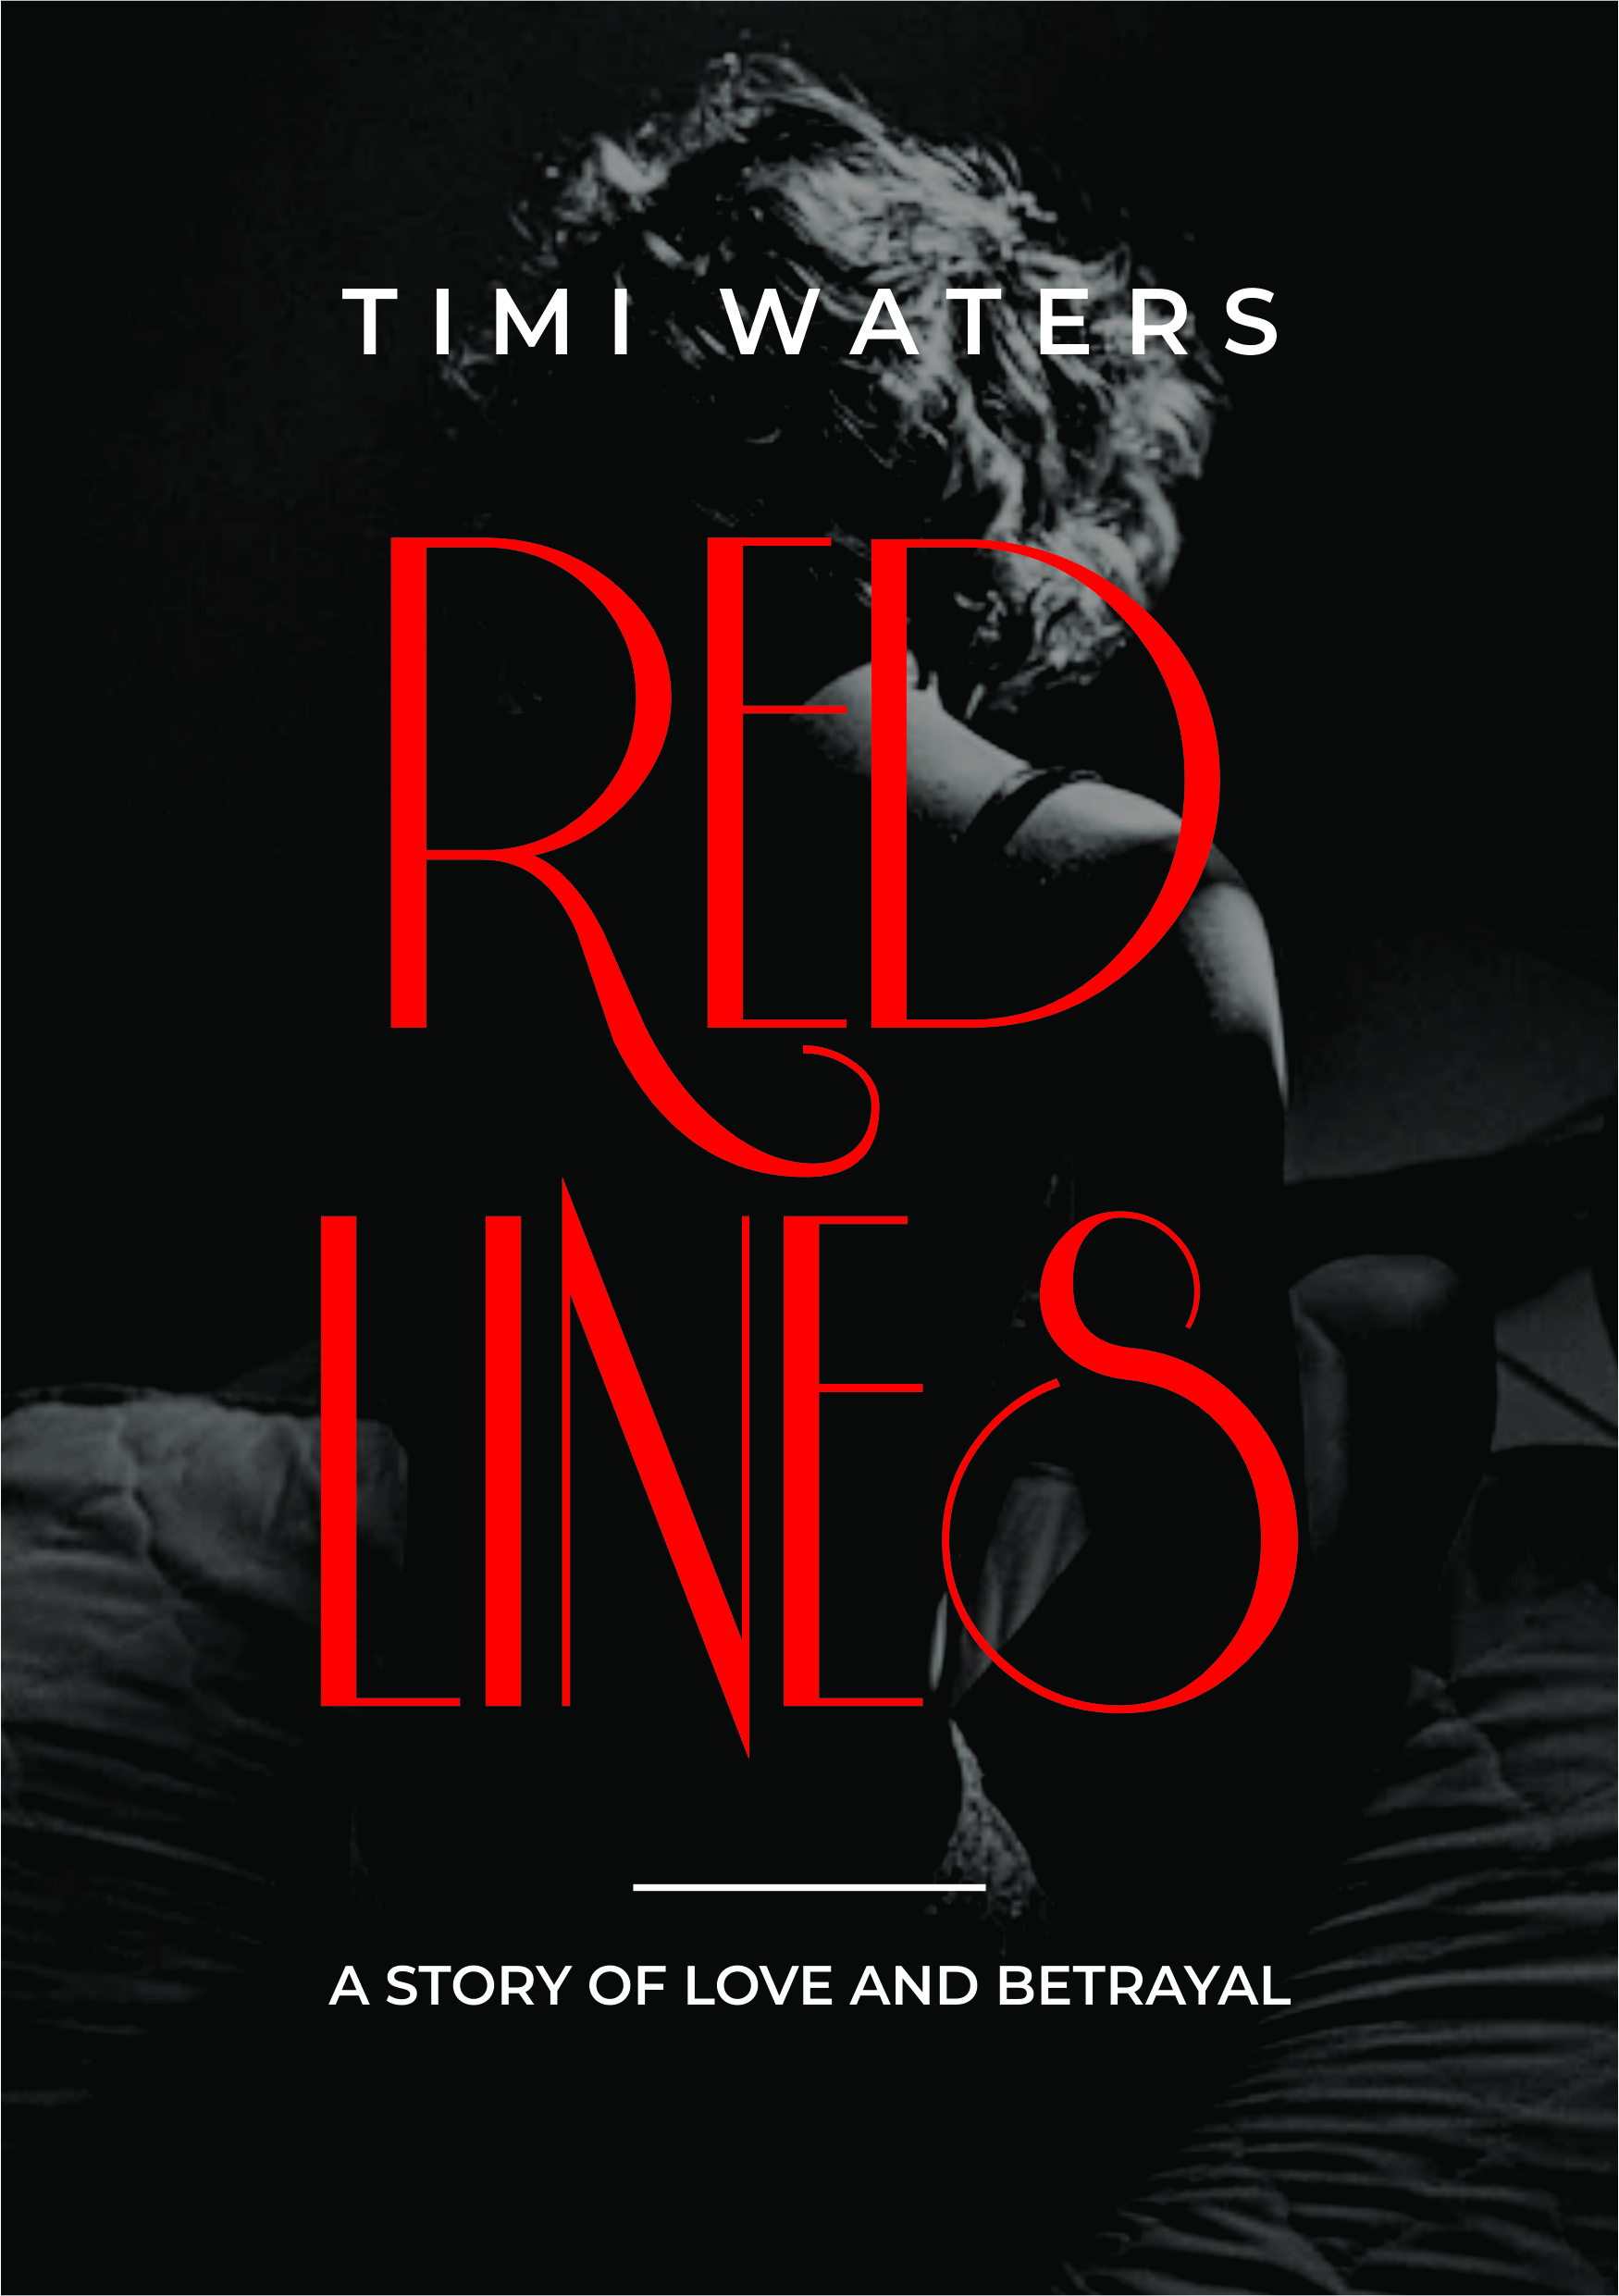 Red lines by Timi waters